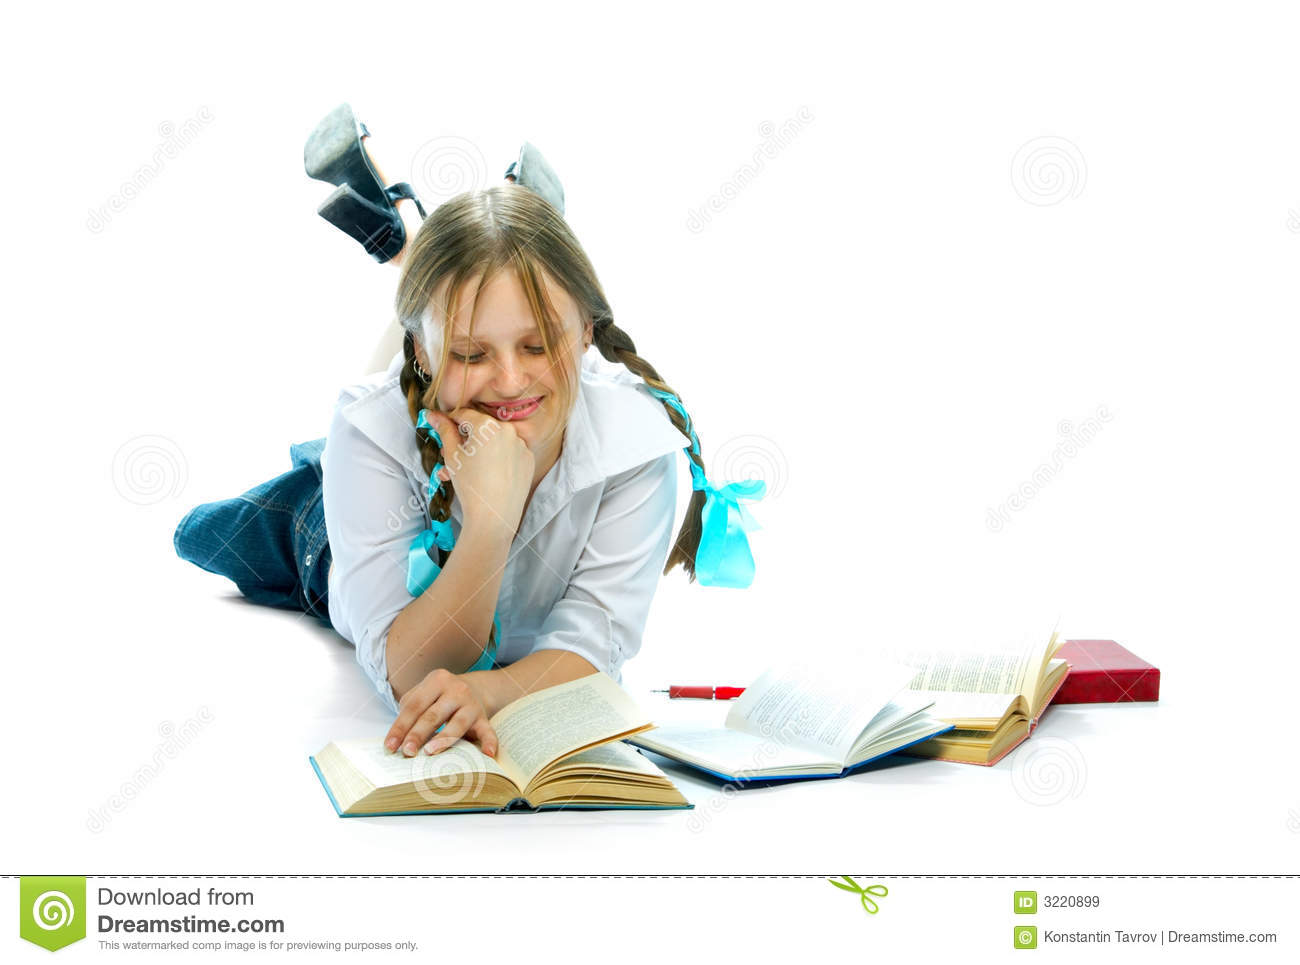 Student Girl Reading Books Royalty Free Stock Images - Image: 3220899: dreamstime.com/royalty-free-stock-images-student-girl-reading-books...